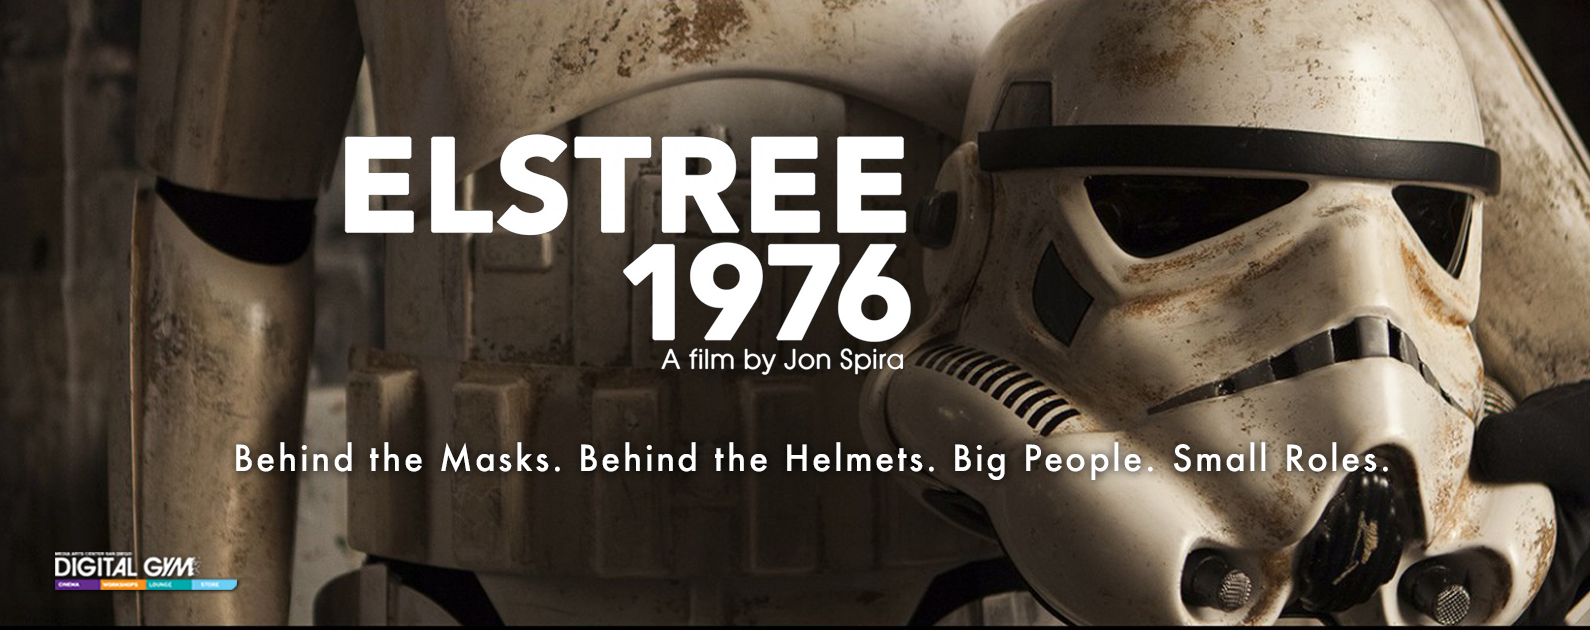 Star Wars Doc, Elstree 1976, Now Showing in San Diego (June 3-5, 7-9)